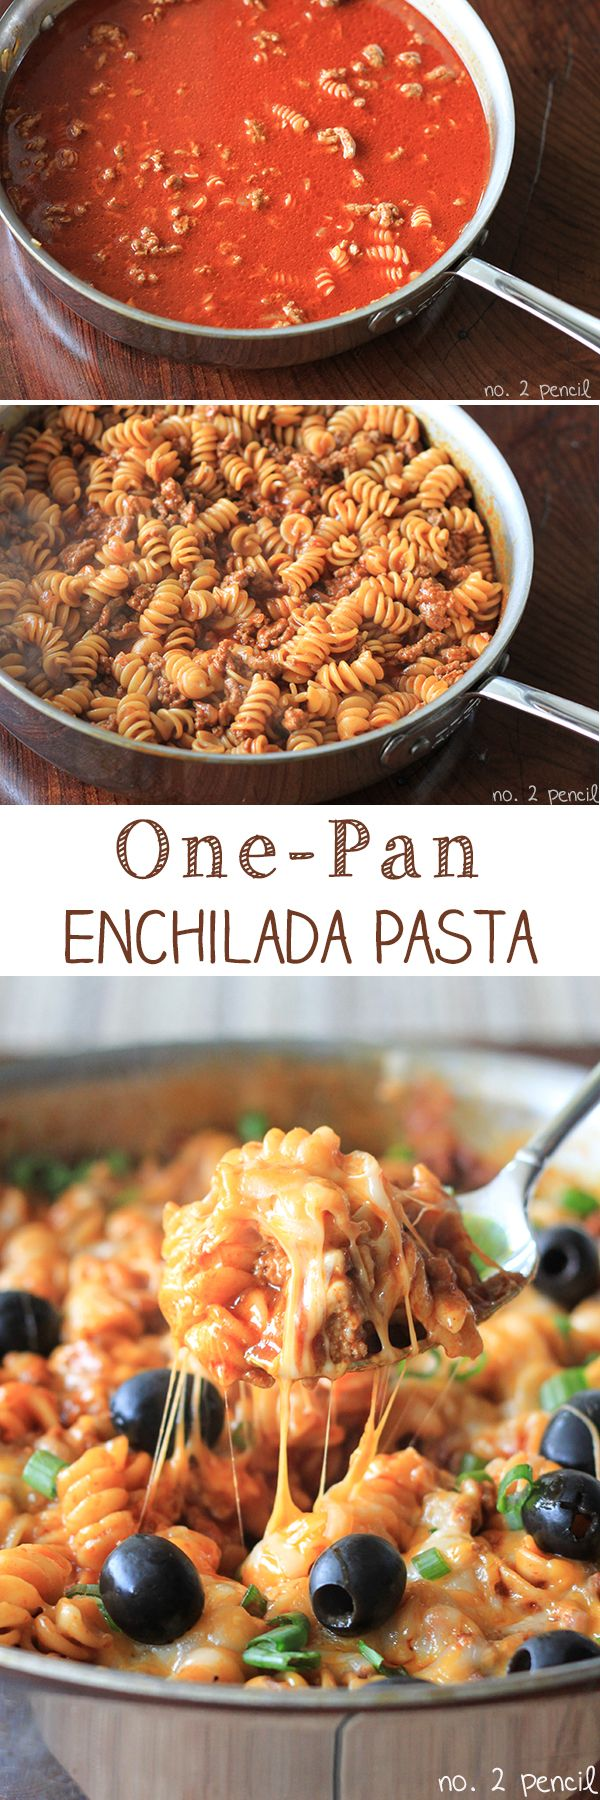 One-Pan Enchilada Pasta. Used whole wheat penne and organic ground beef, cumin and chili powder. Even Lydia loved it!